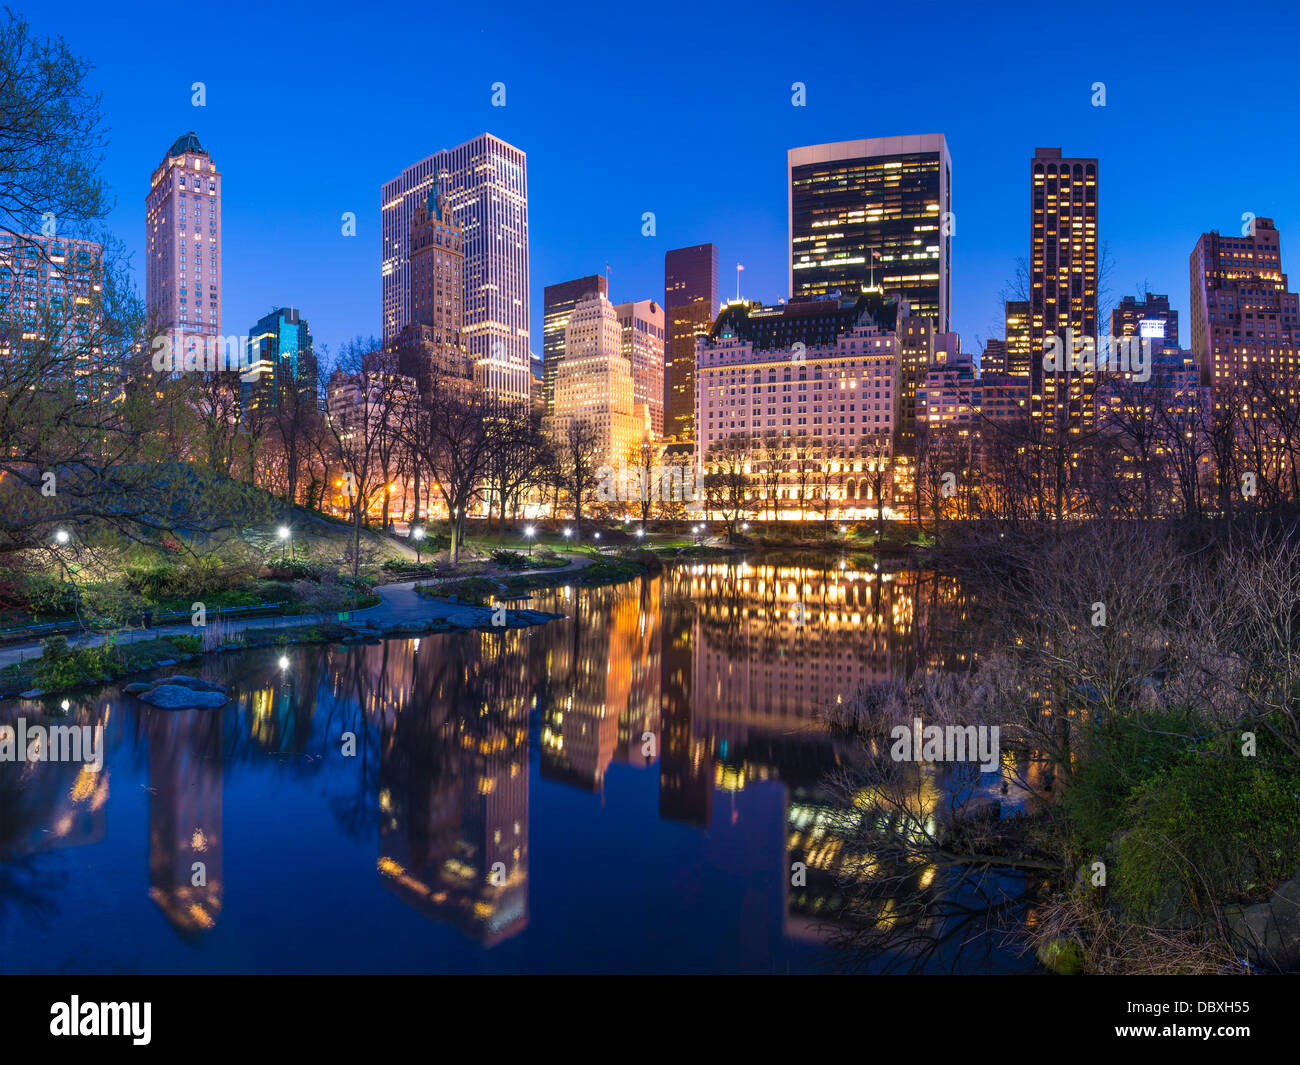 Skyline along Central Park South in New York City, USA. - Stock Image